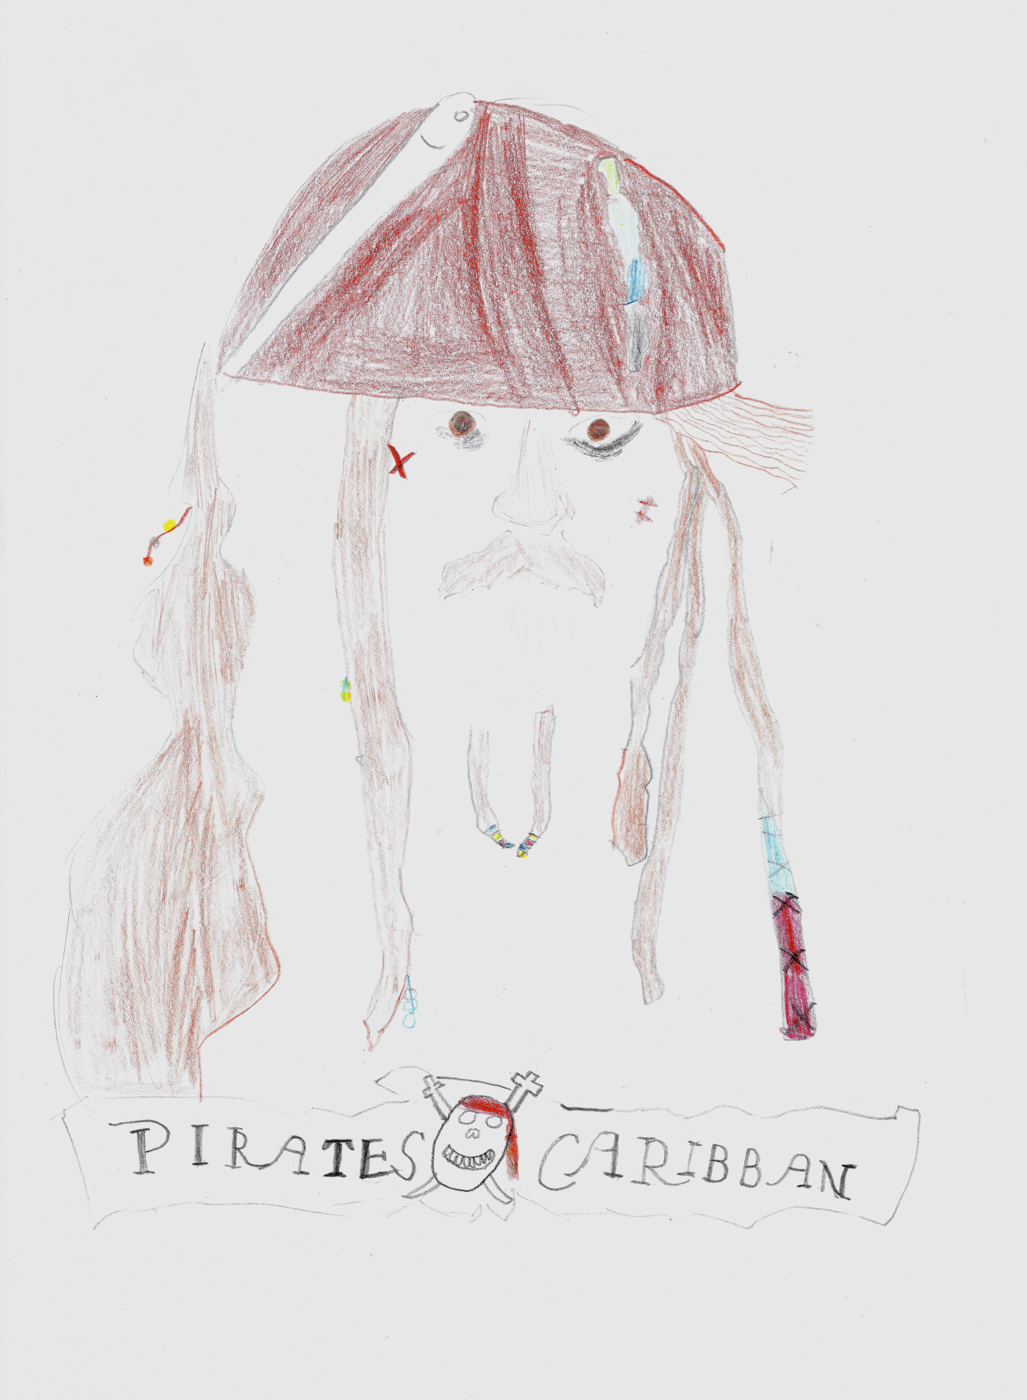 pirate des caraibes